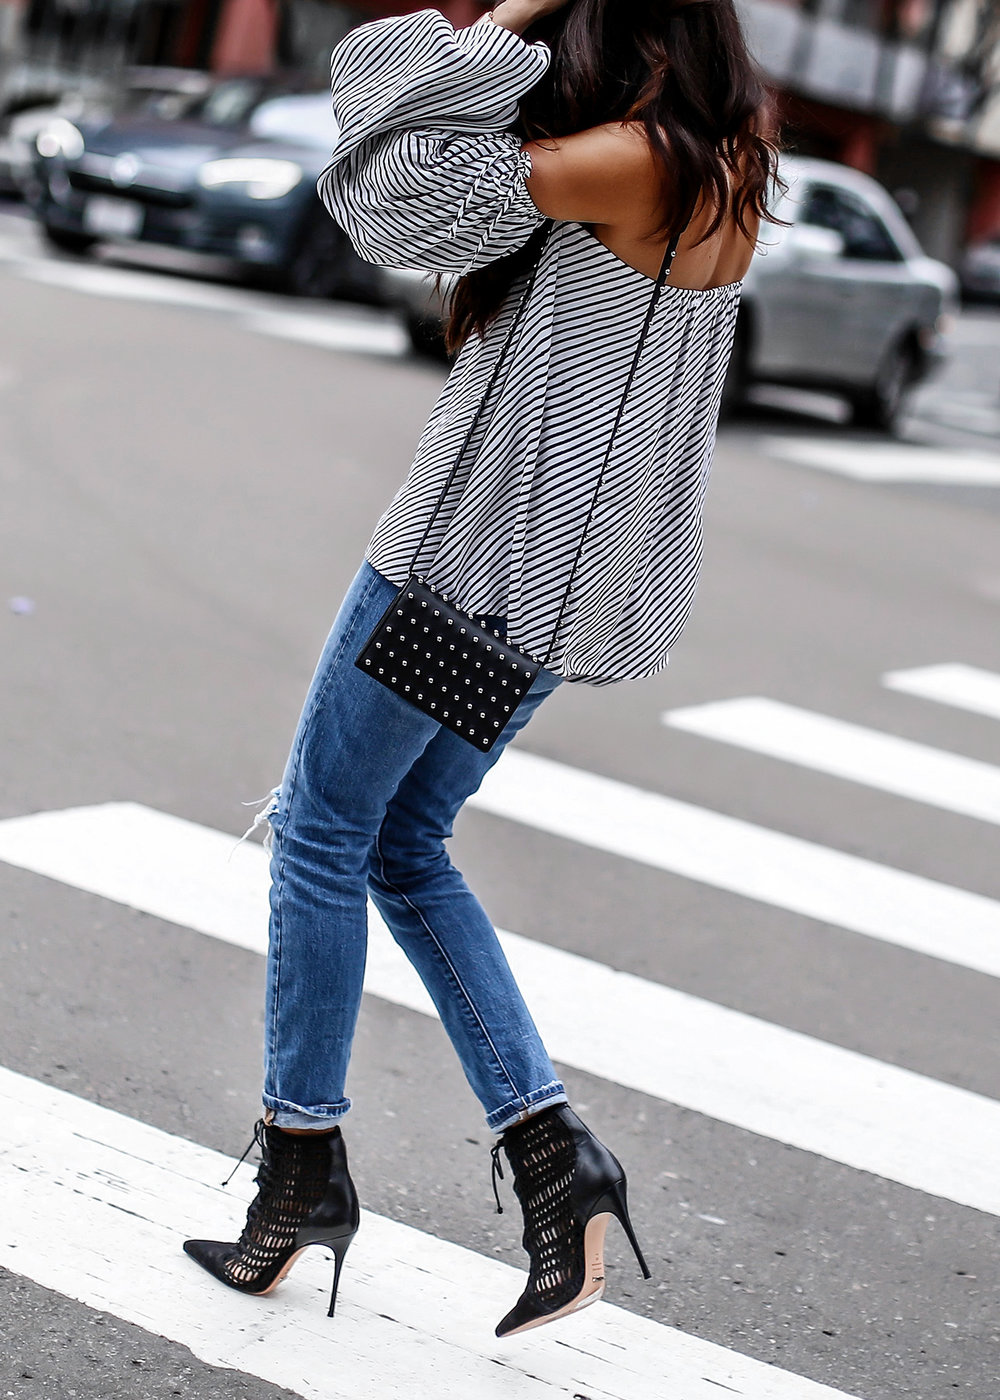 High_Rise_Distressed_Levis_Jeans_Dallas_MLM_Striped_Off_The_Shoulder_Top_Alexander_Wang_Studded_Bag_Scutz_Botties.jpg